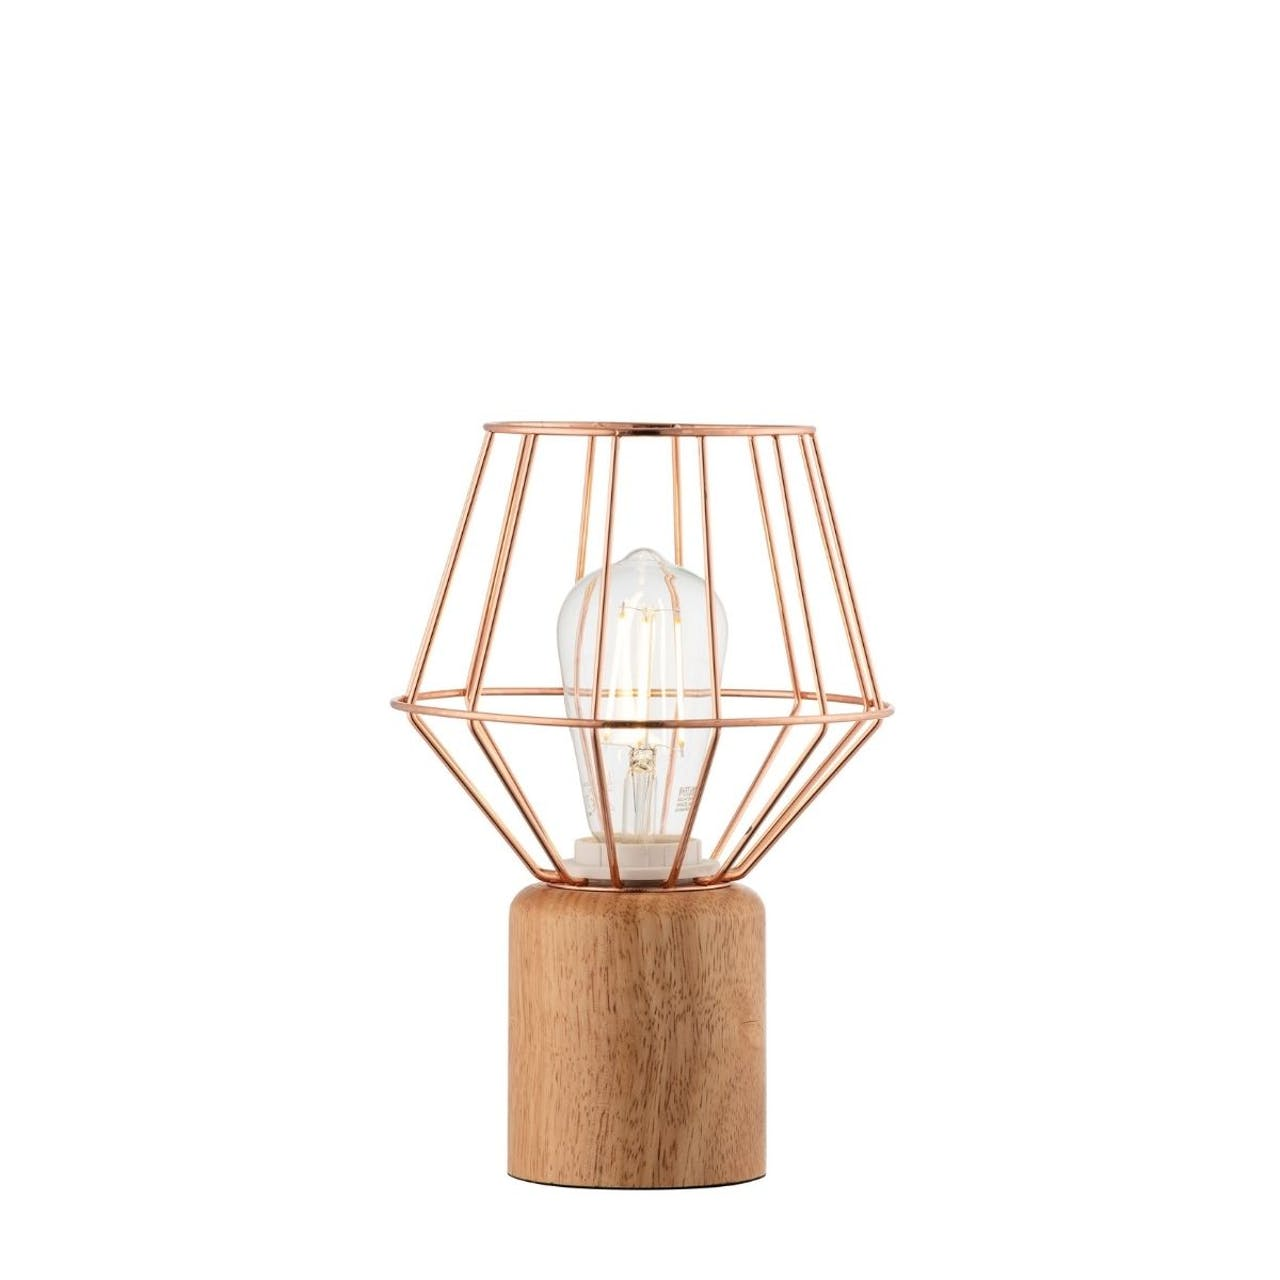 Galway Crystal Wood & Copper Table Lamp